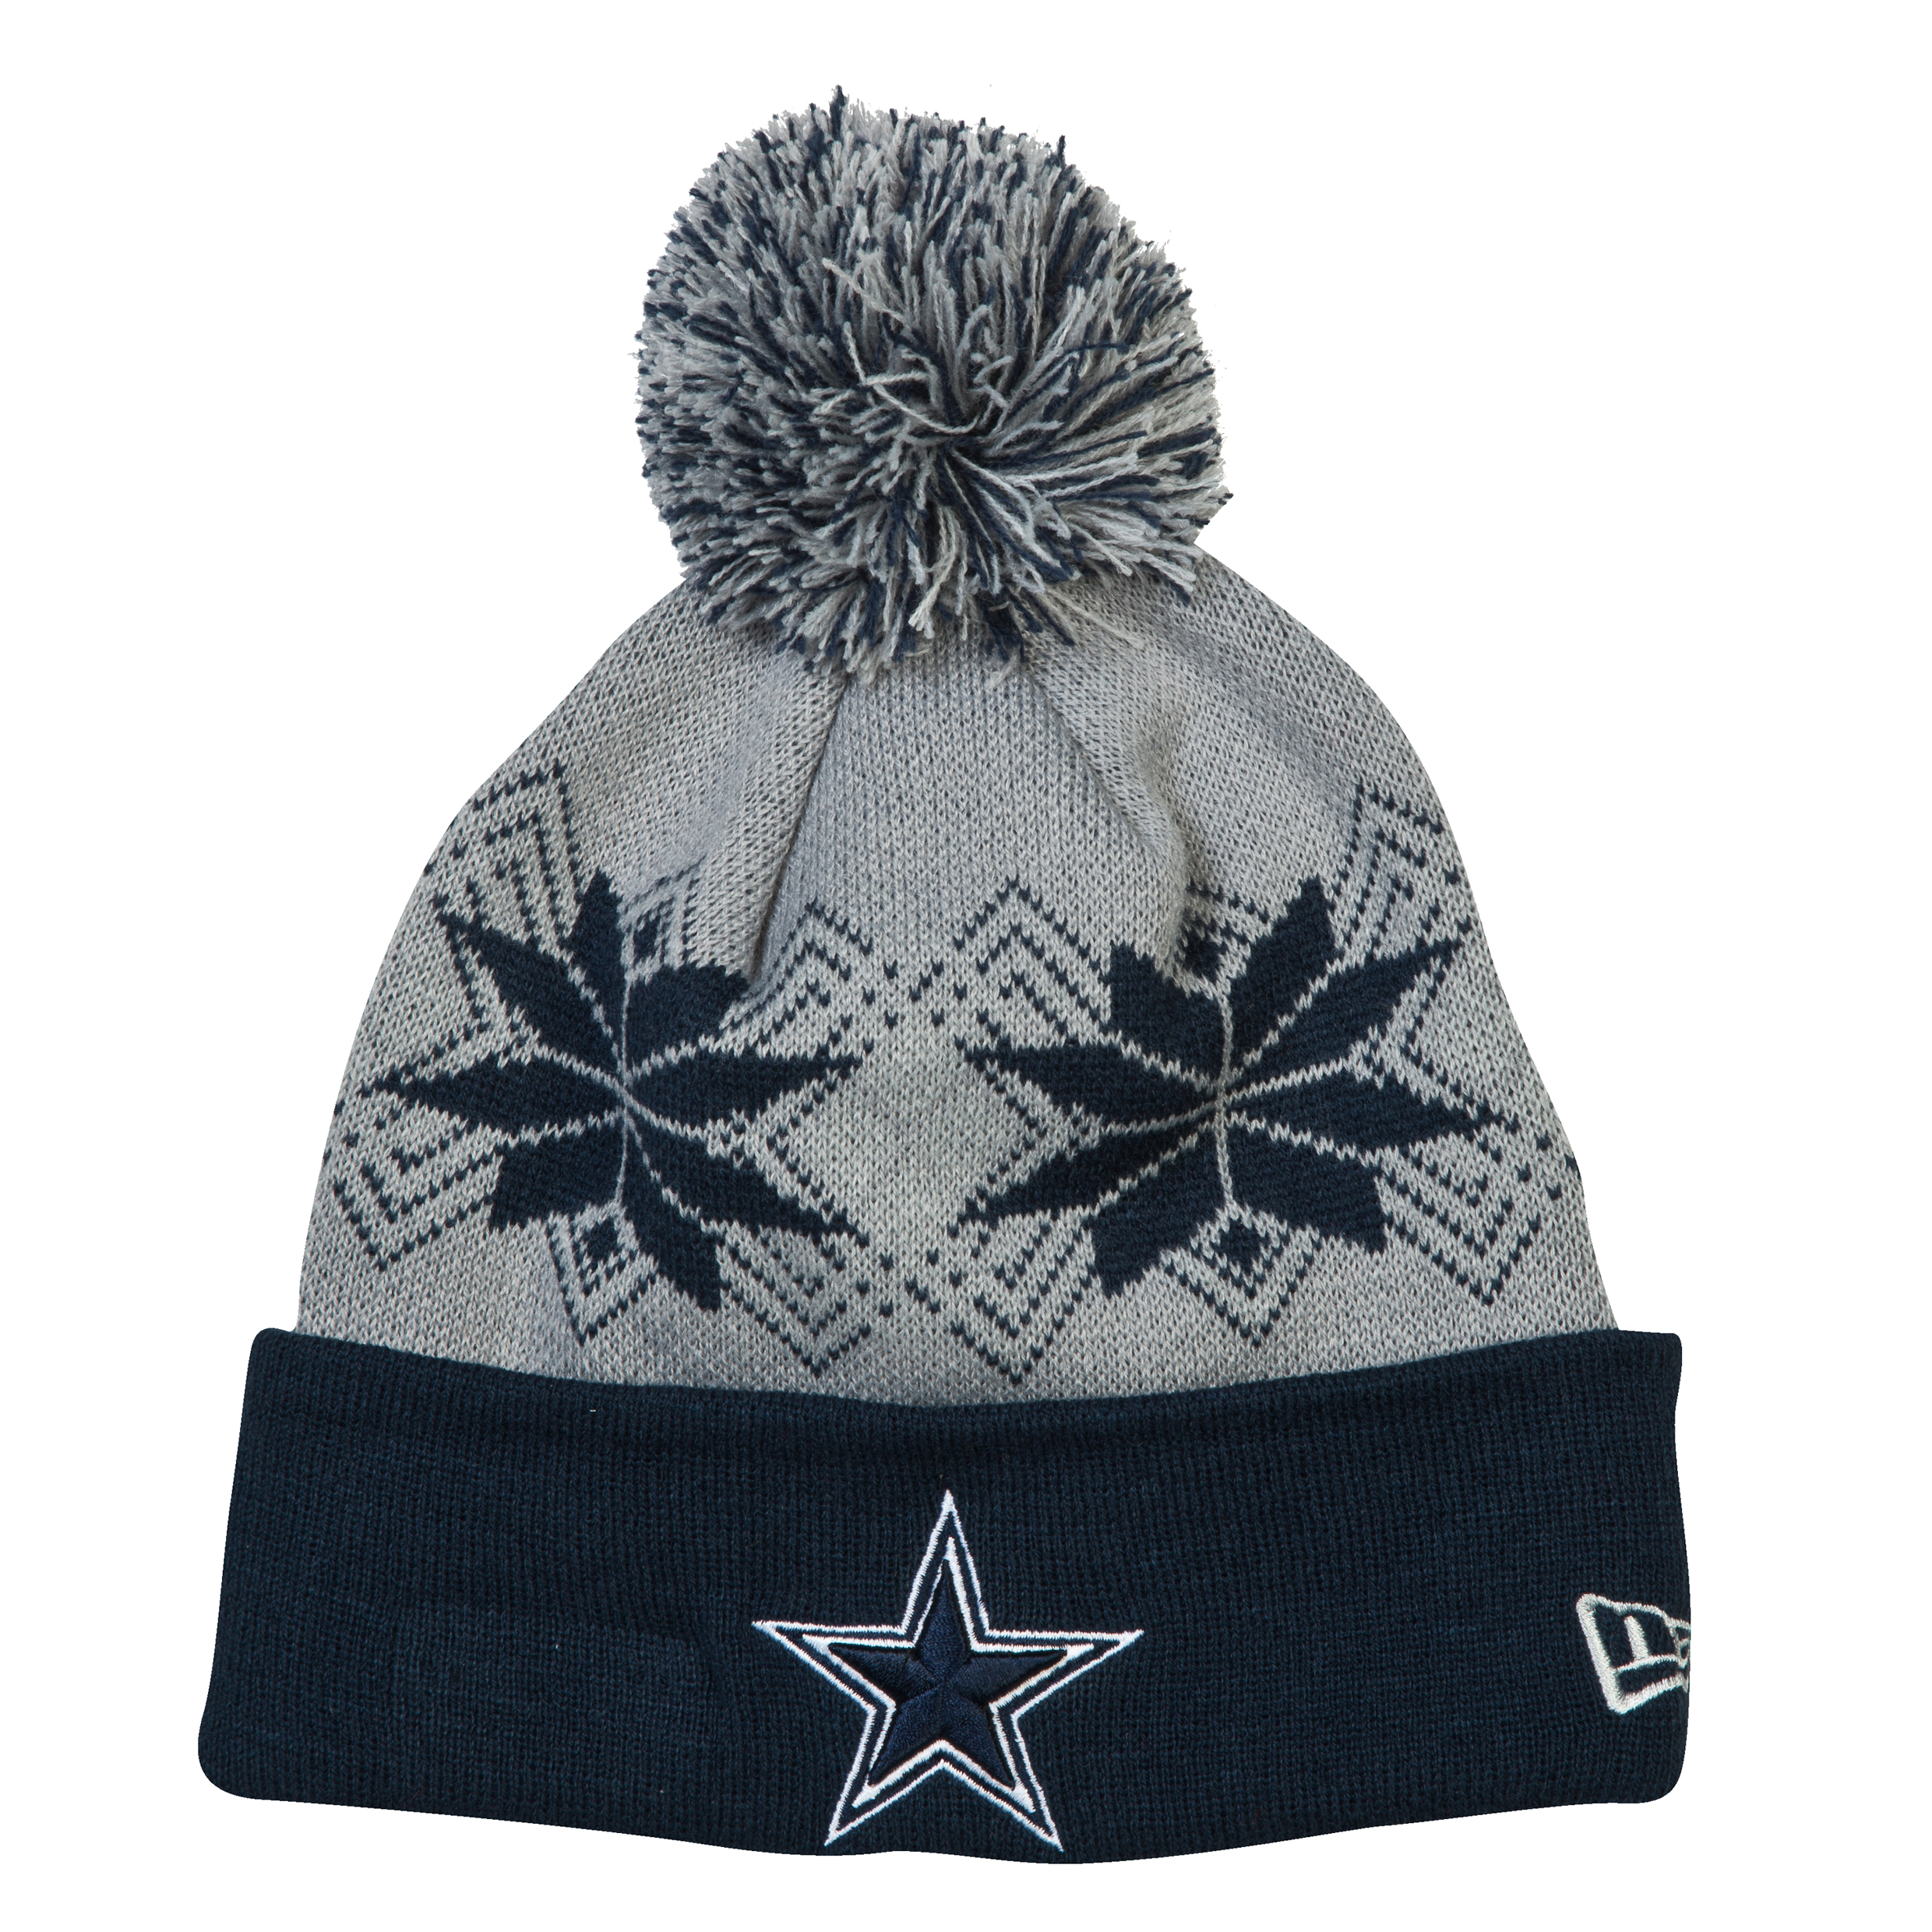 Dallas Cowboys New Era Intarsia Pom Knit